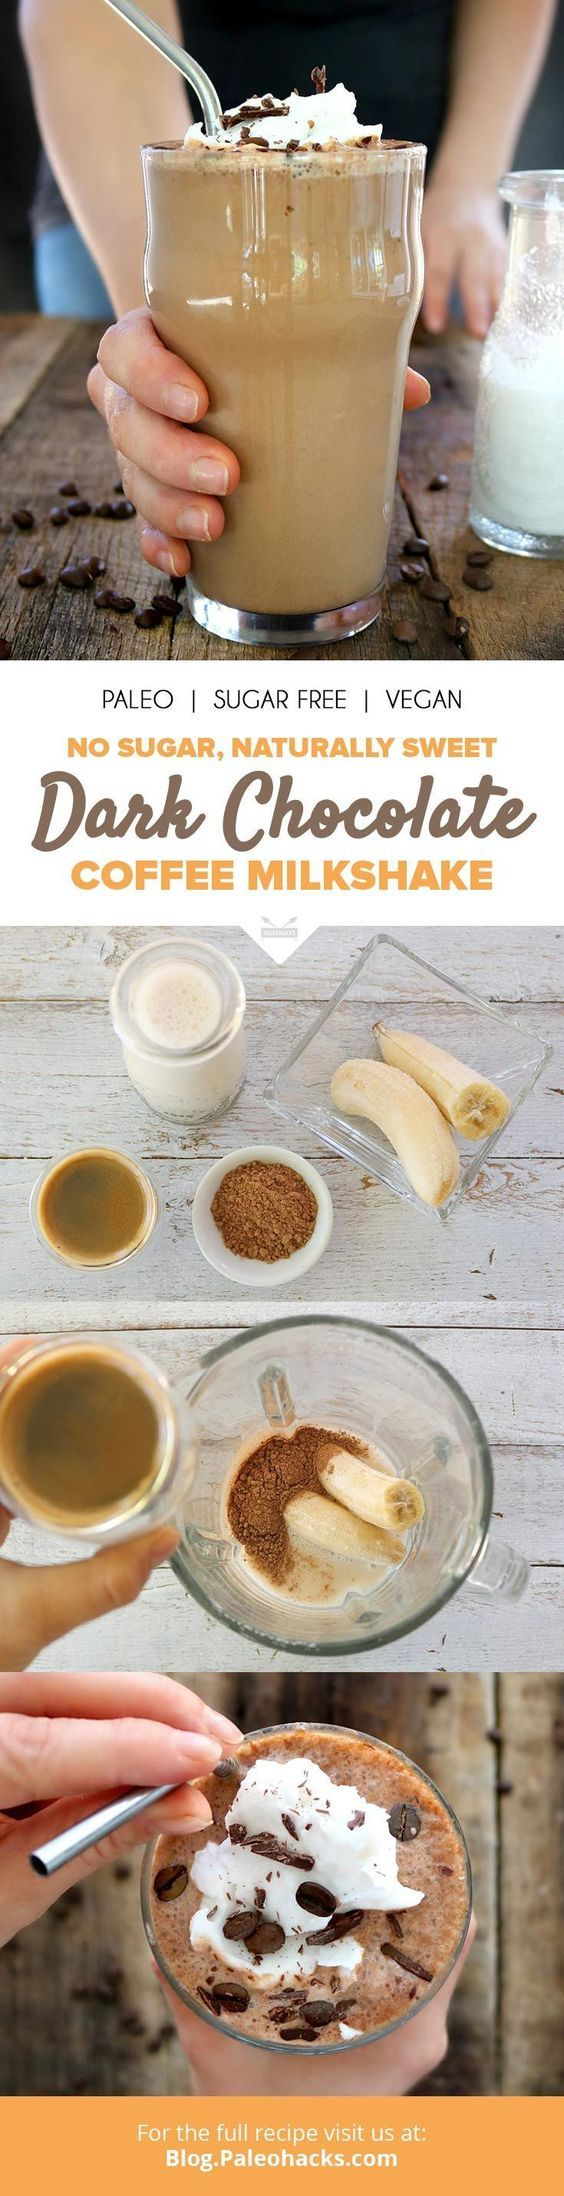 This decadent coffee milkshake combines the richness of coffee with real cacao for an energy-boosting chocolate drink without the sugar crash. Get the recipe here: http://paleo.co/choccoffeeshake. Maybe use teechino for espresso for aip